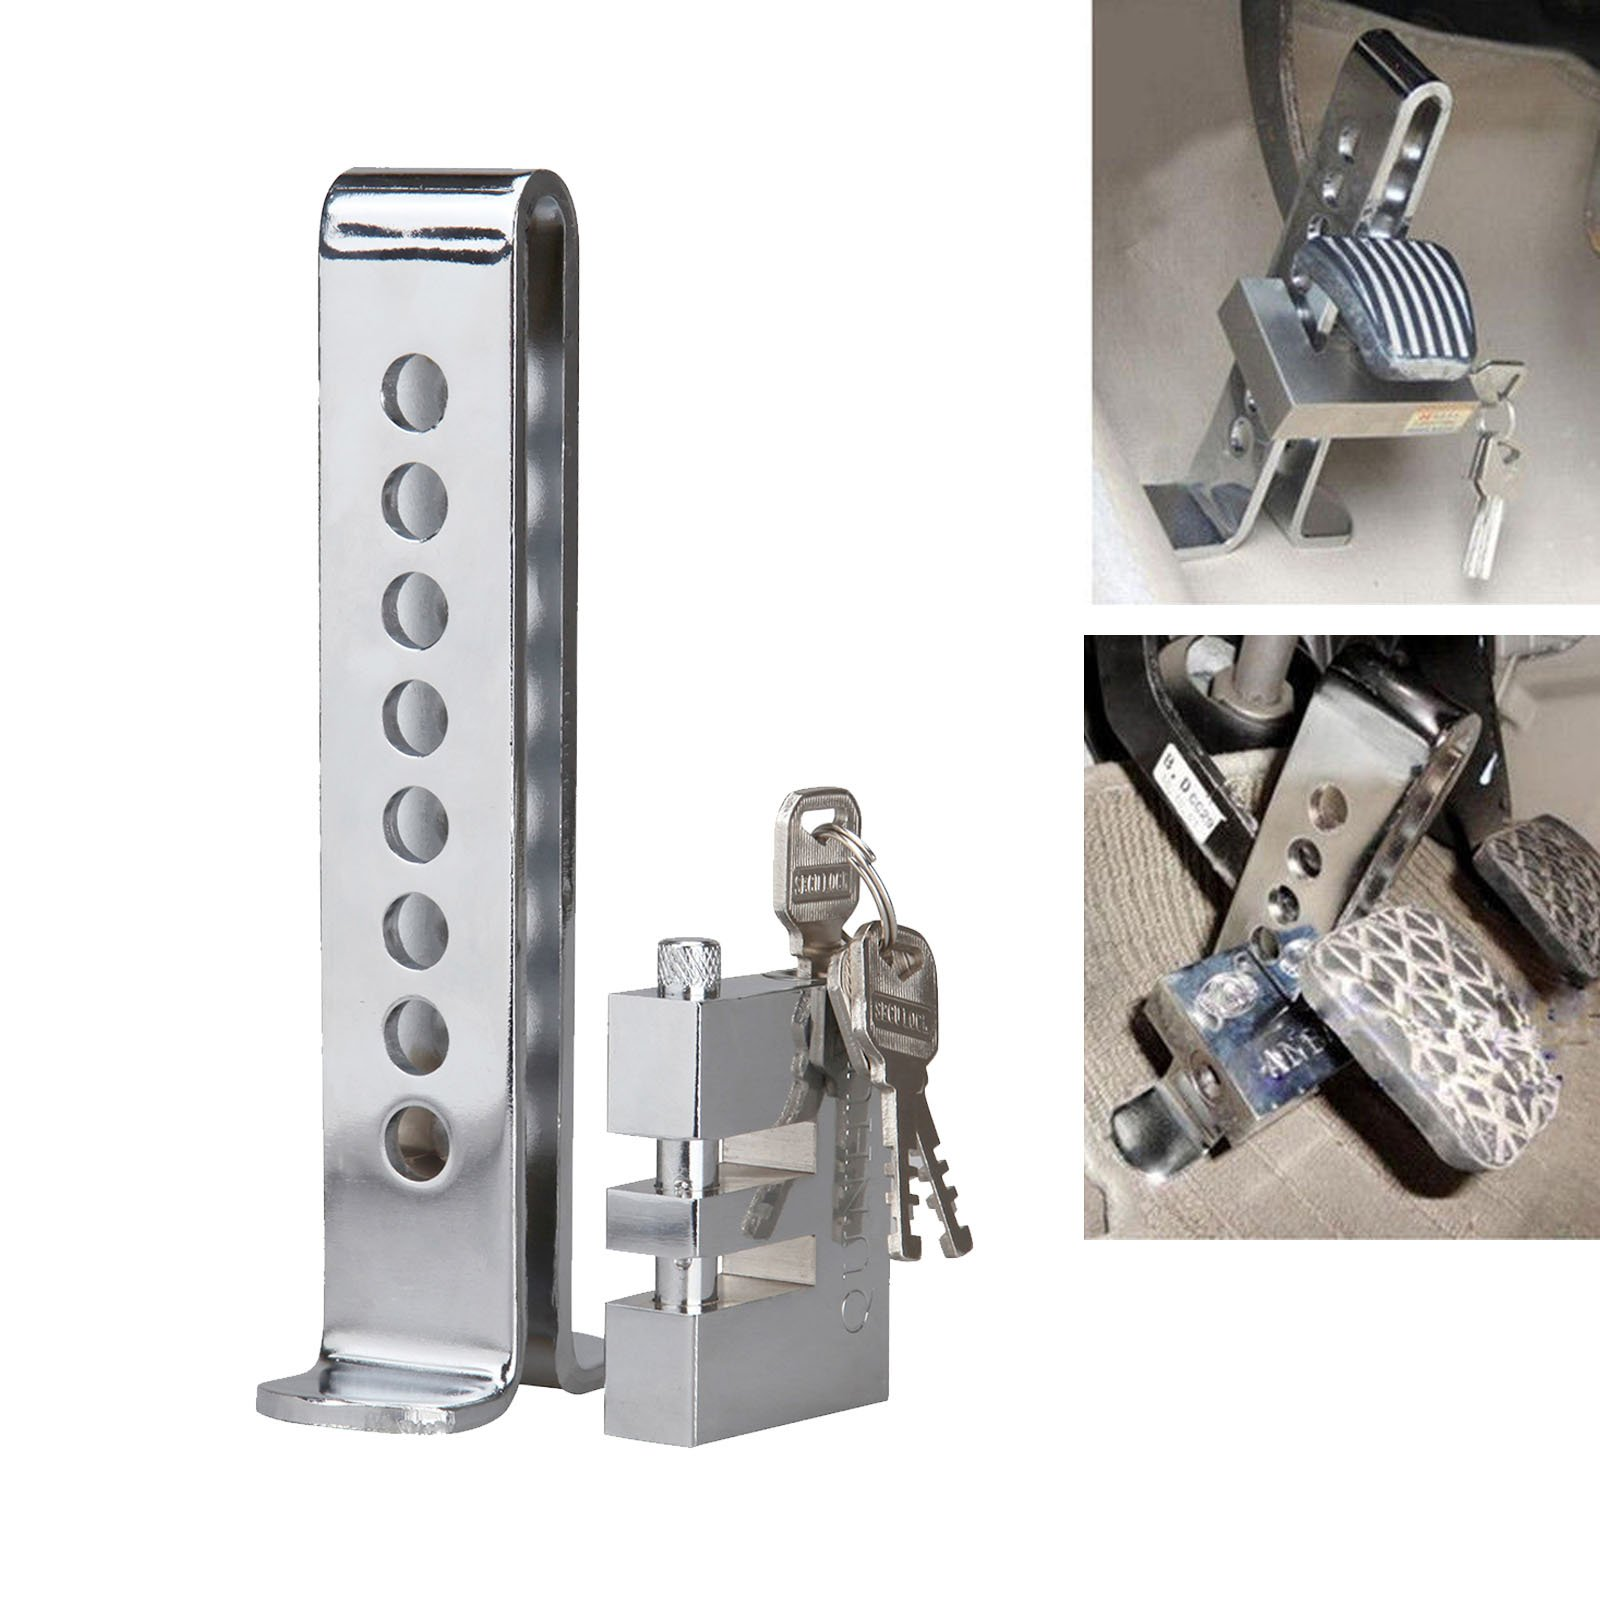 Honhill Universal Auto 8 Holes Pedal Security Tool Anti-Thief Device Stainless Steel Clutch Lock Car Brake Lock by Honhill